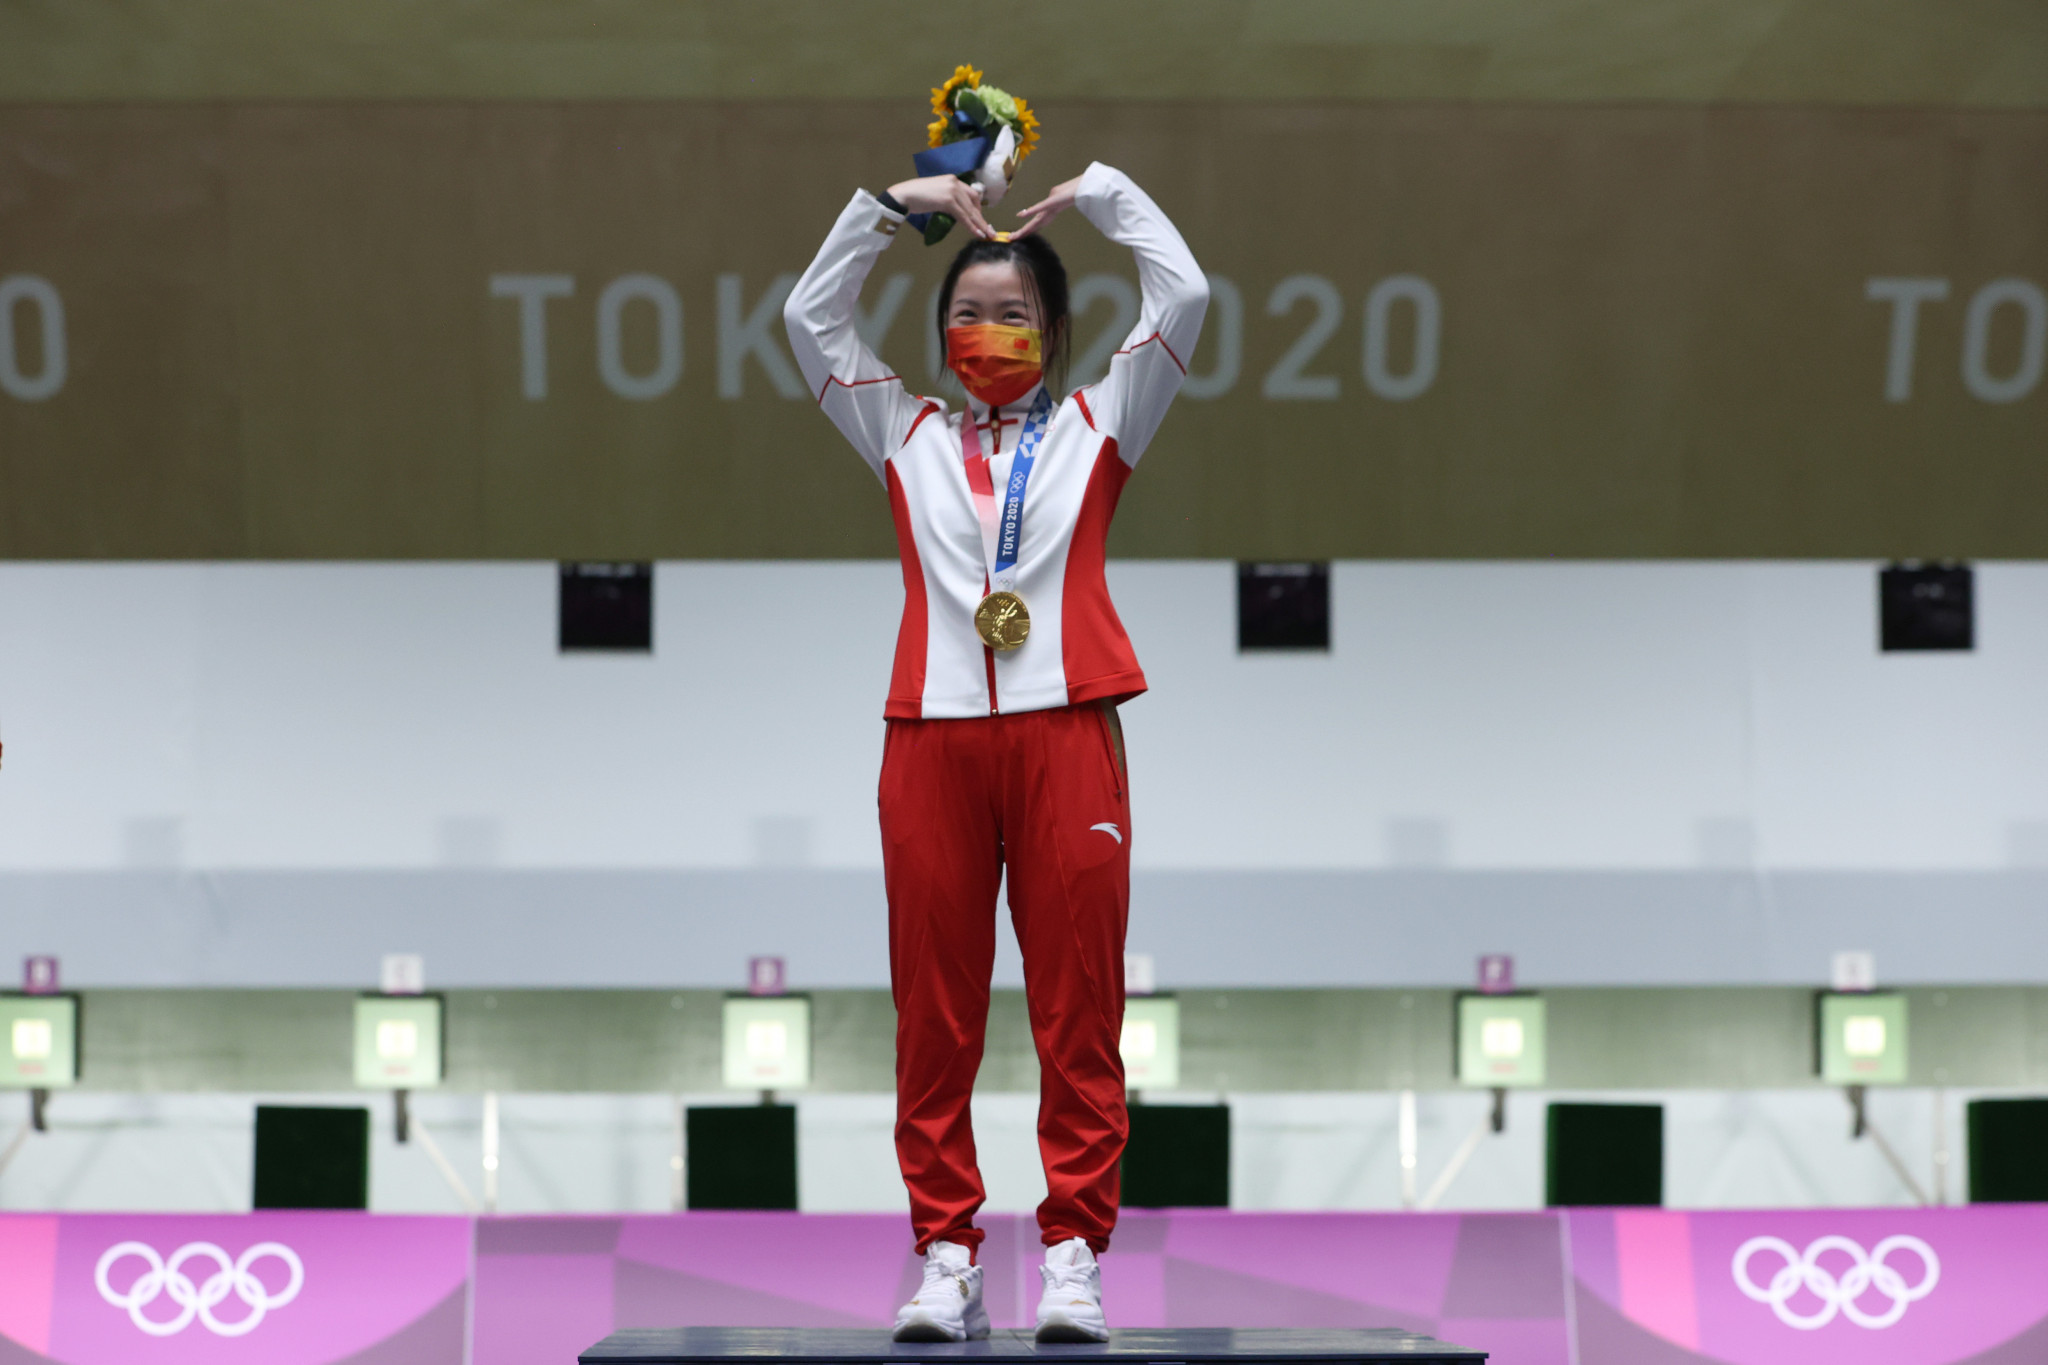 Chinese shooter Yang wins first gold medal of delayed Tokyo 2020 Olympics